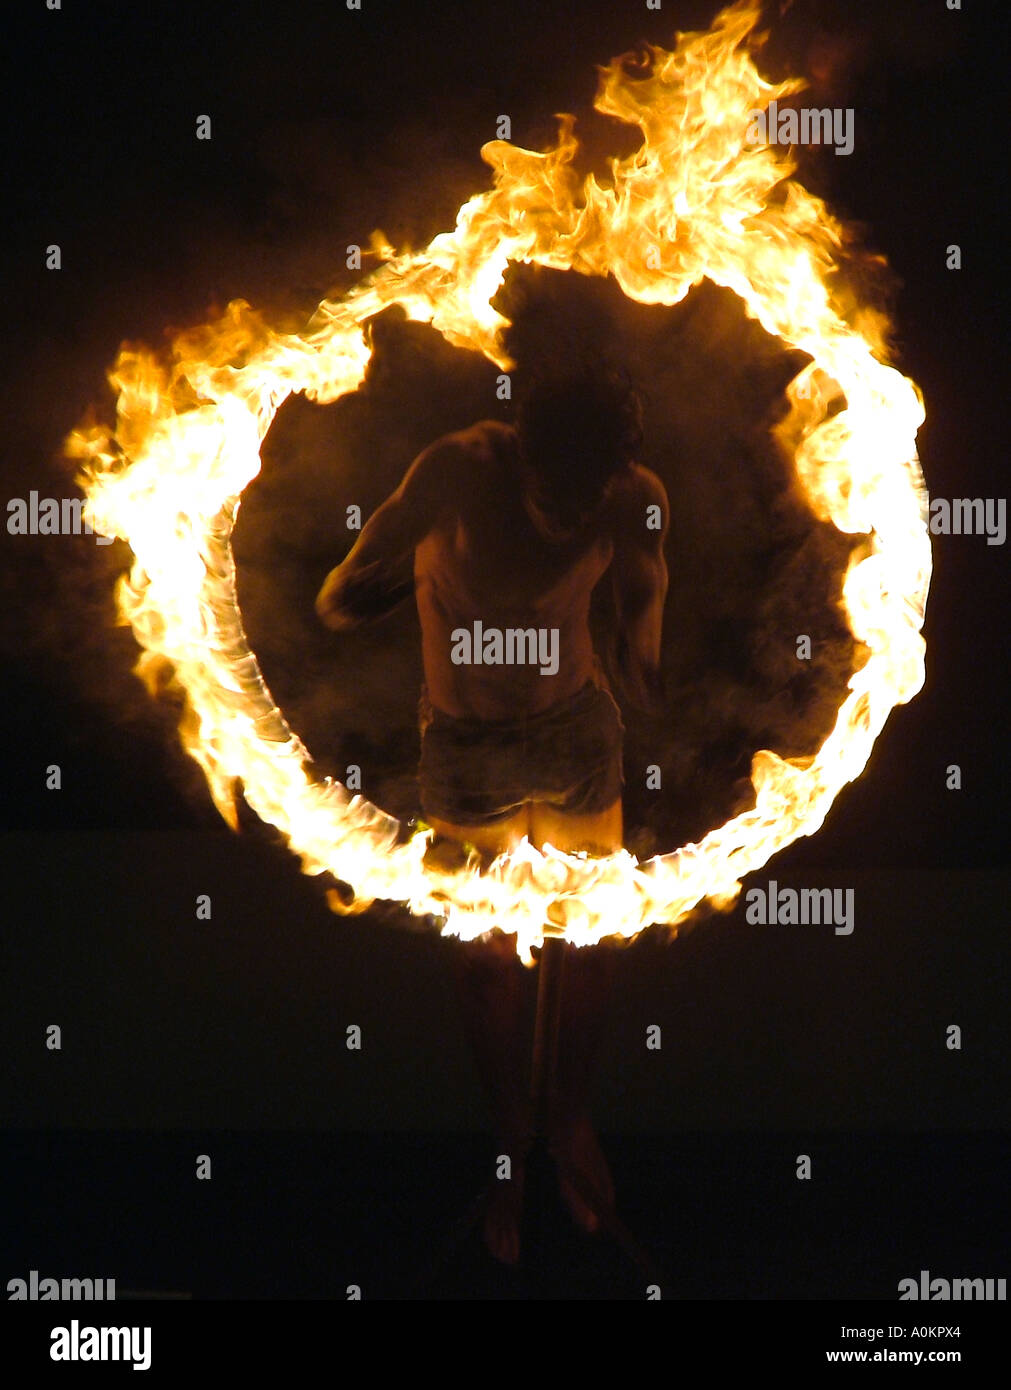 A ghostly image of a local Sri Lankan performer jumping through a blazing fire hoop in the darkness. - Stock Image